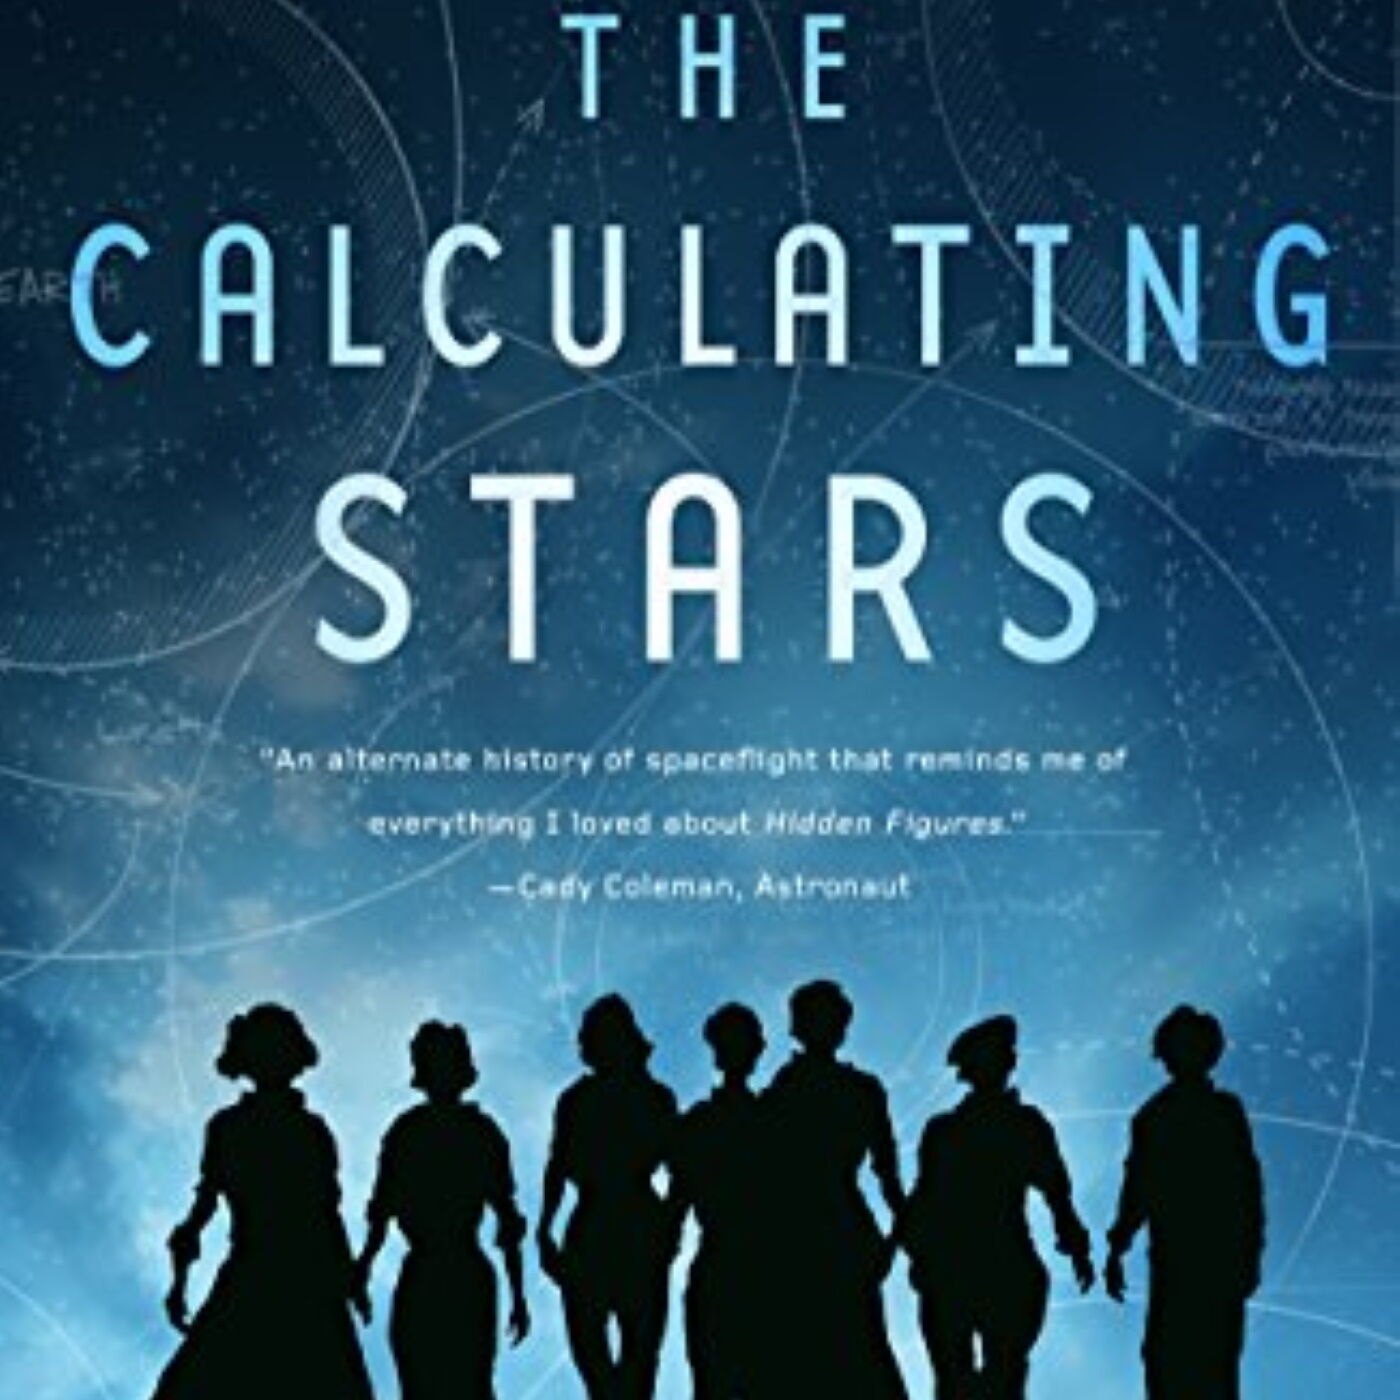 Book-Space! #13. The Calculating Stars by Mary Robinette Kowal